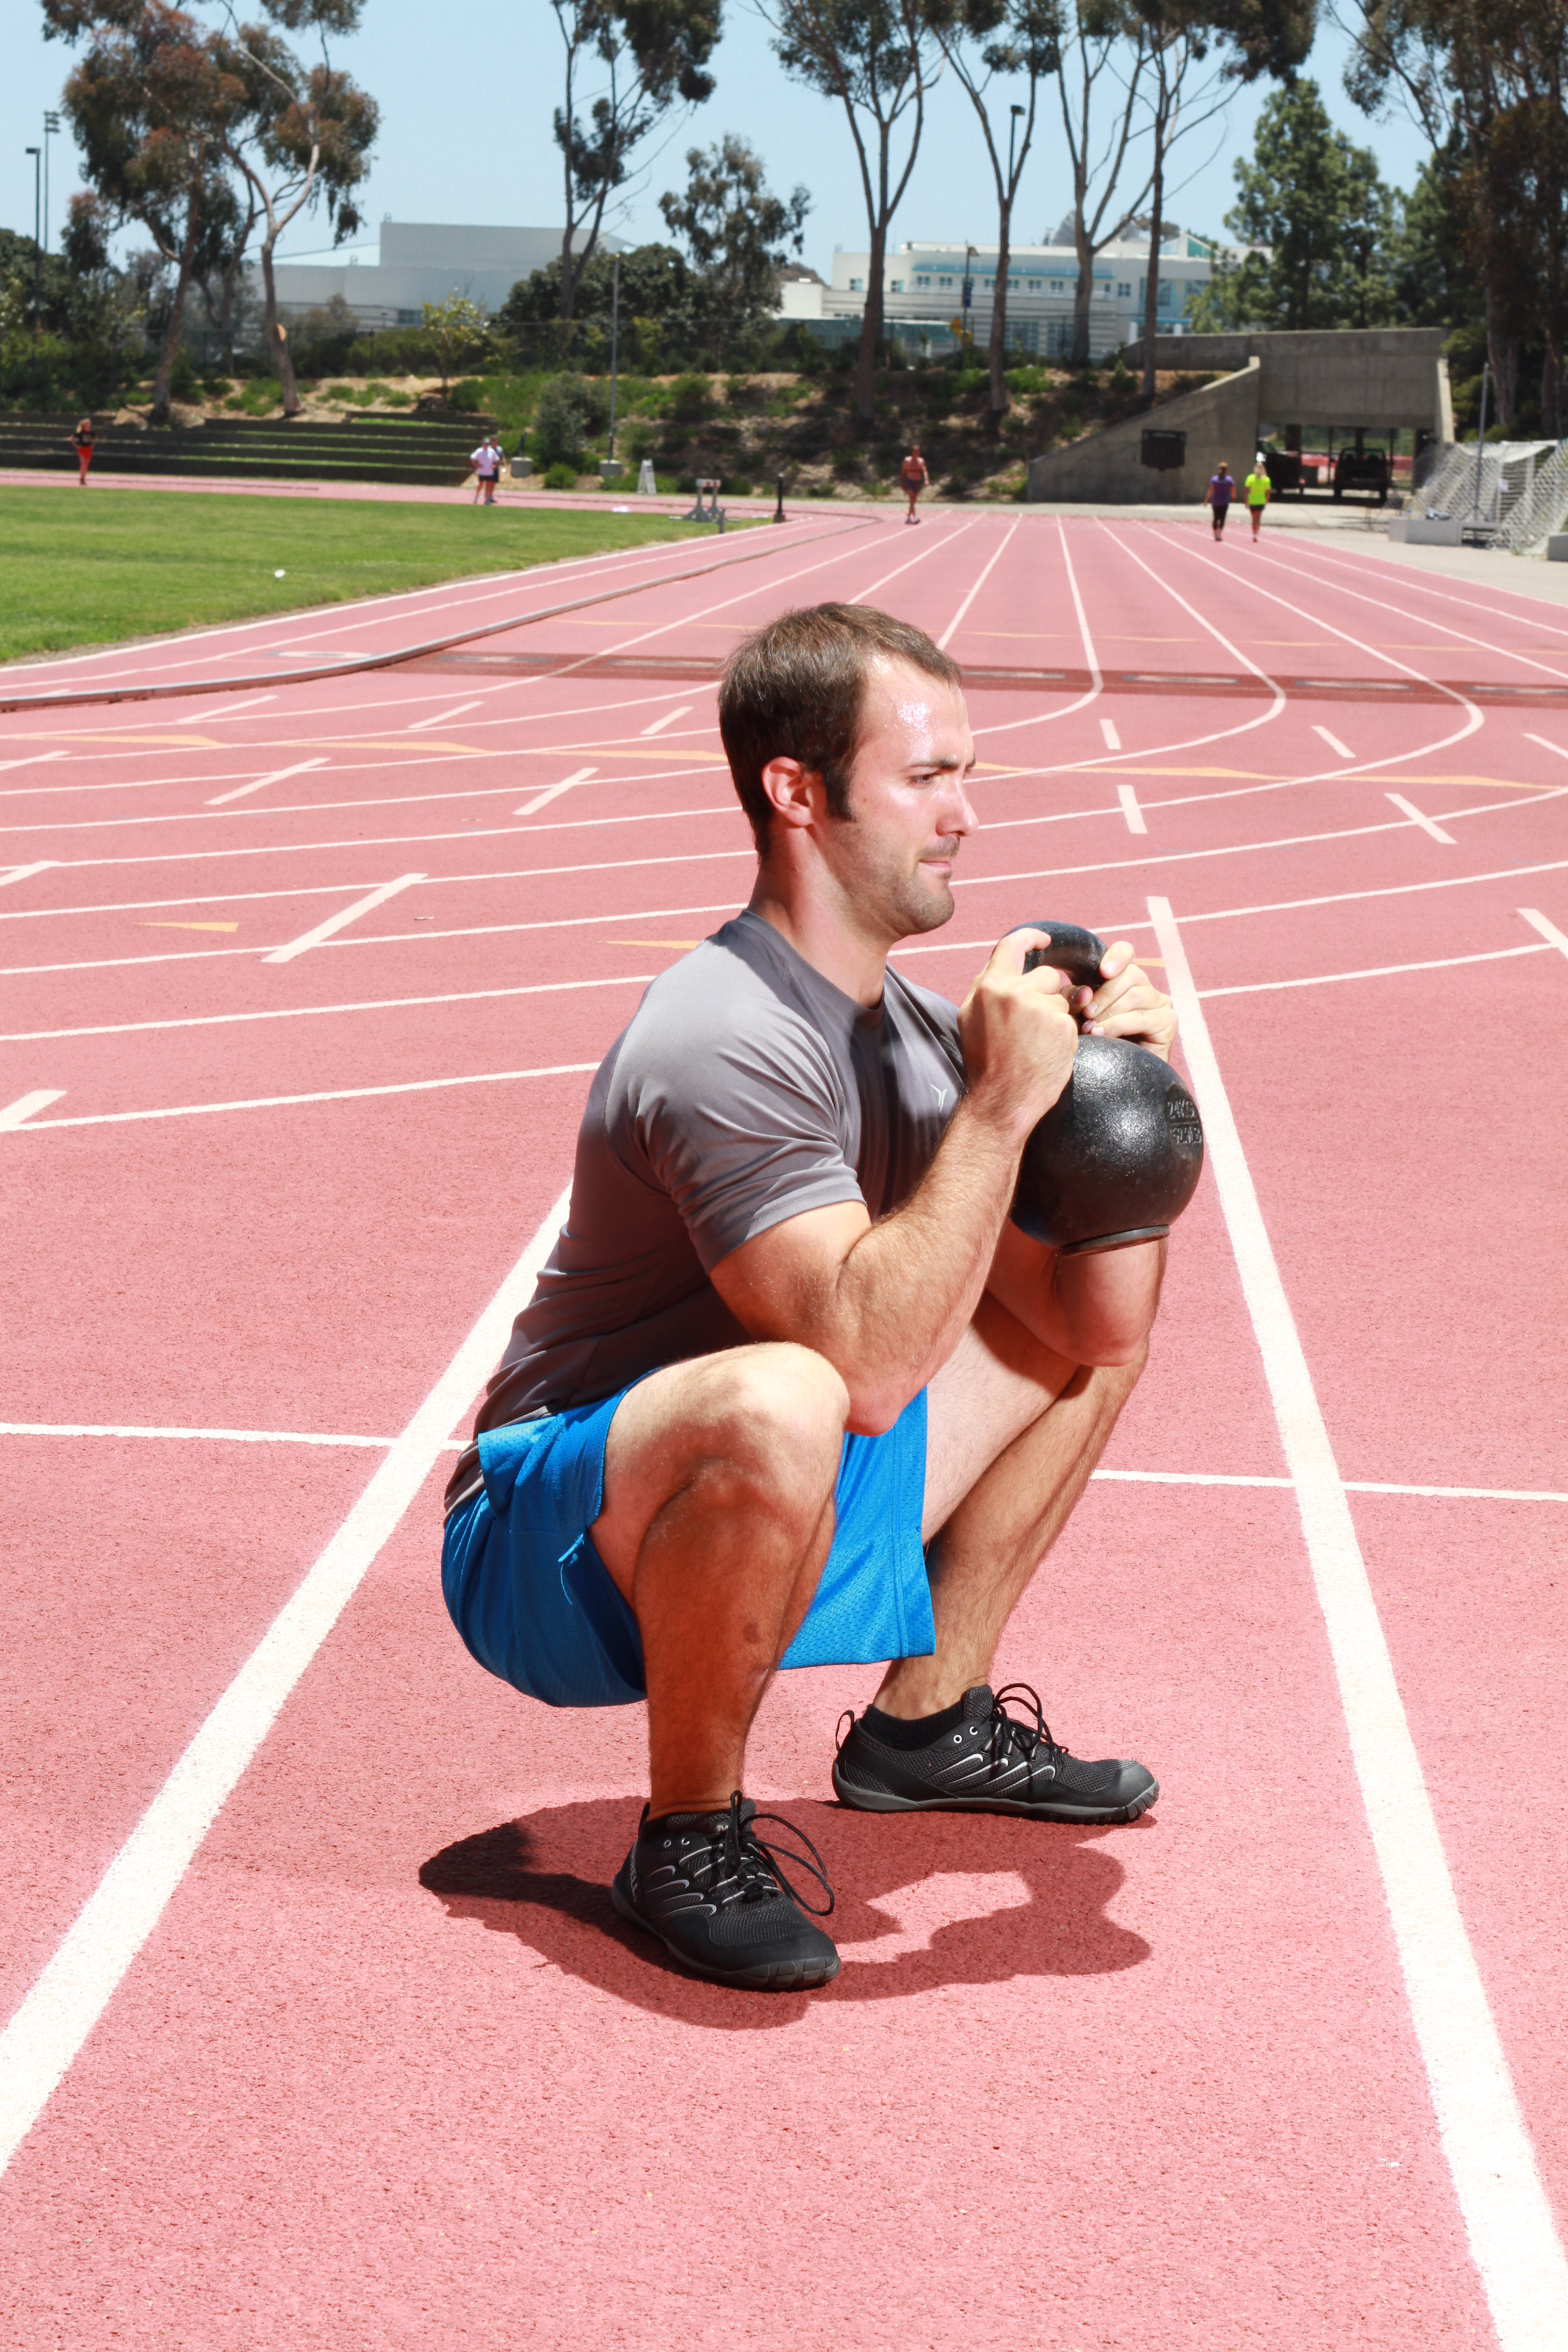 Personal Trainers in San Diego have the benefit of always getting outside